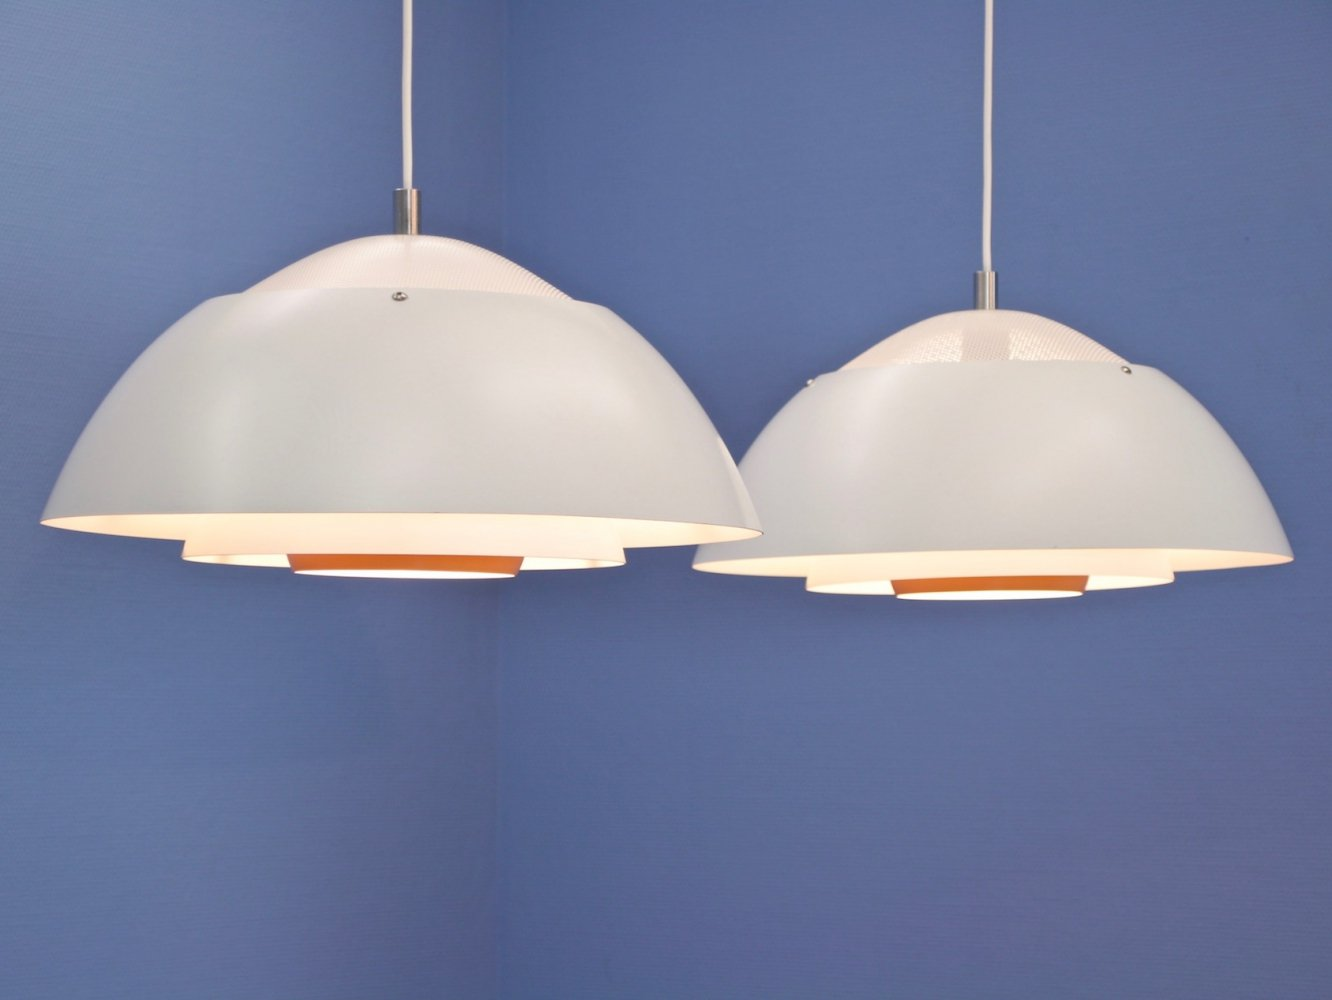 Set of 2 Danish hanging lamps in white with orange accent, 1970s